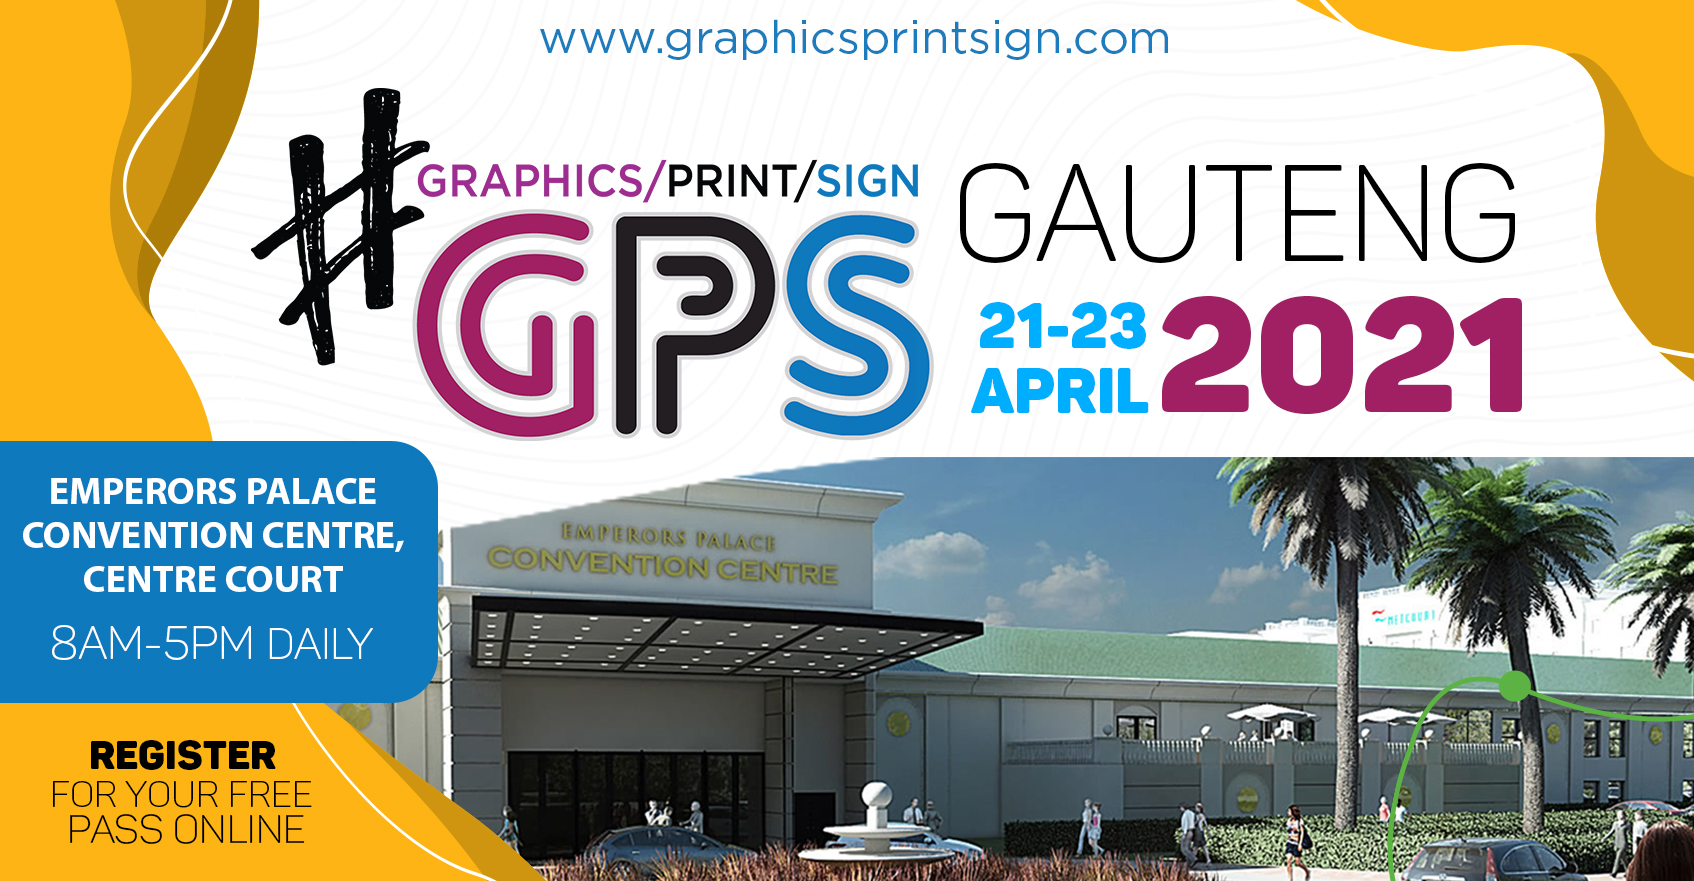 Register Now For The Graphics Print Sign Gauteng Regional Expo